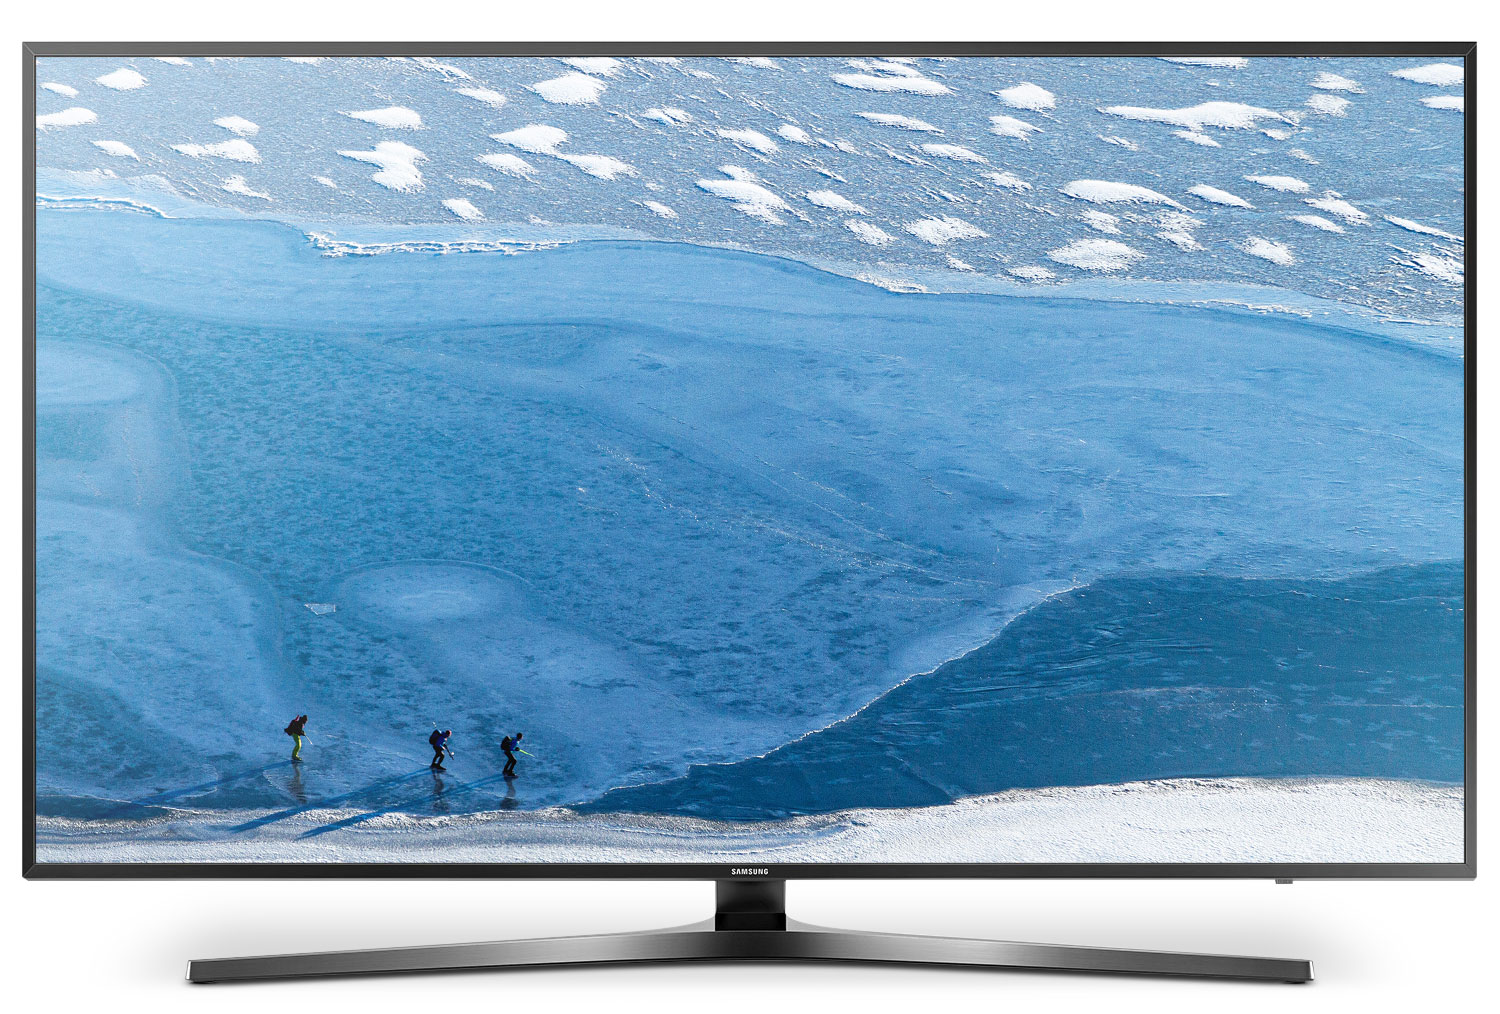 """Televisions - Samsung 40"""" KU7000 Active UHD LED Smart Television with Voice Control Remote"""